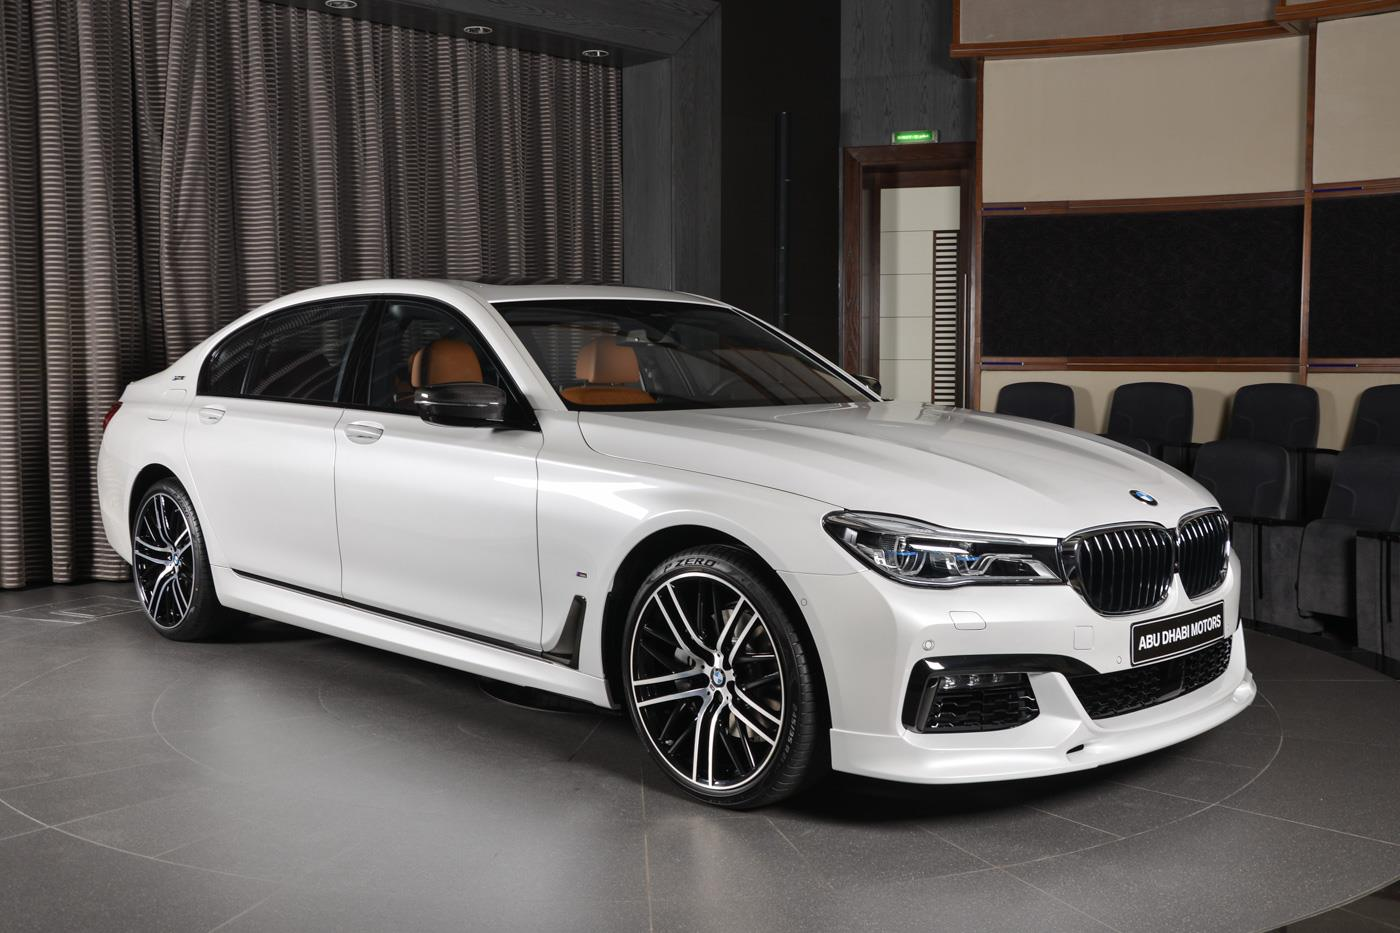 bmw 7 series 740le arrives in abu dhabi with m sport package bmw car tuning. Black Bedroom Furniture Sets. Home Design Ideas